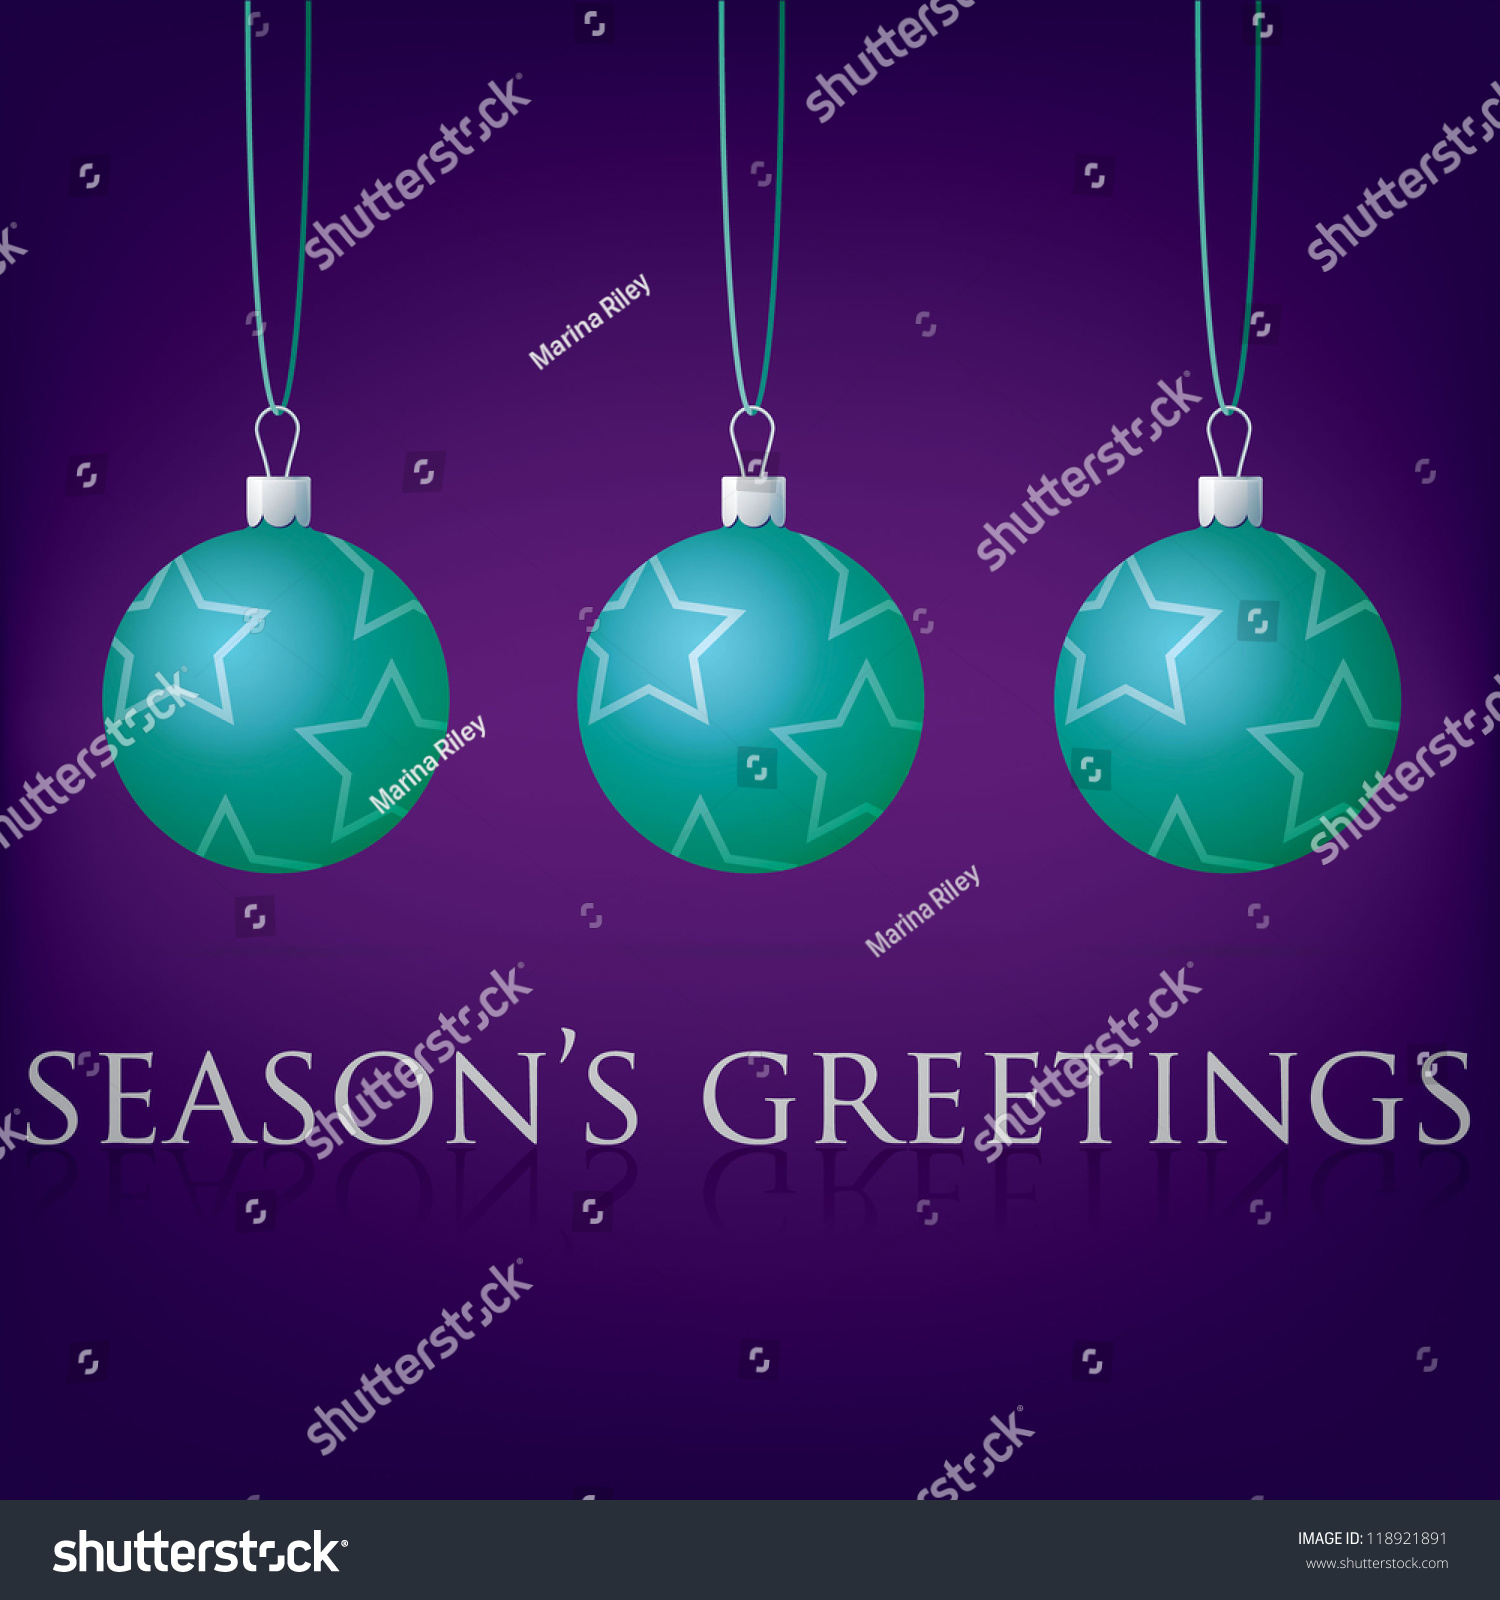 Bright Purple Seasons Greetings Bauble Card Stock Vector Royalty